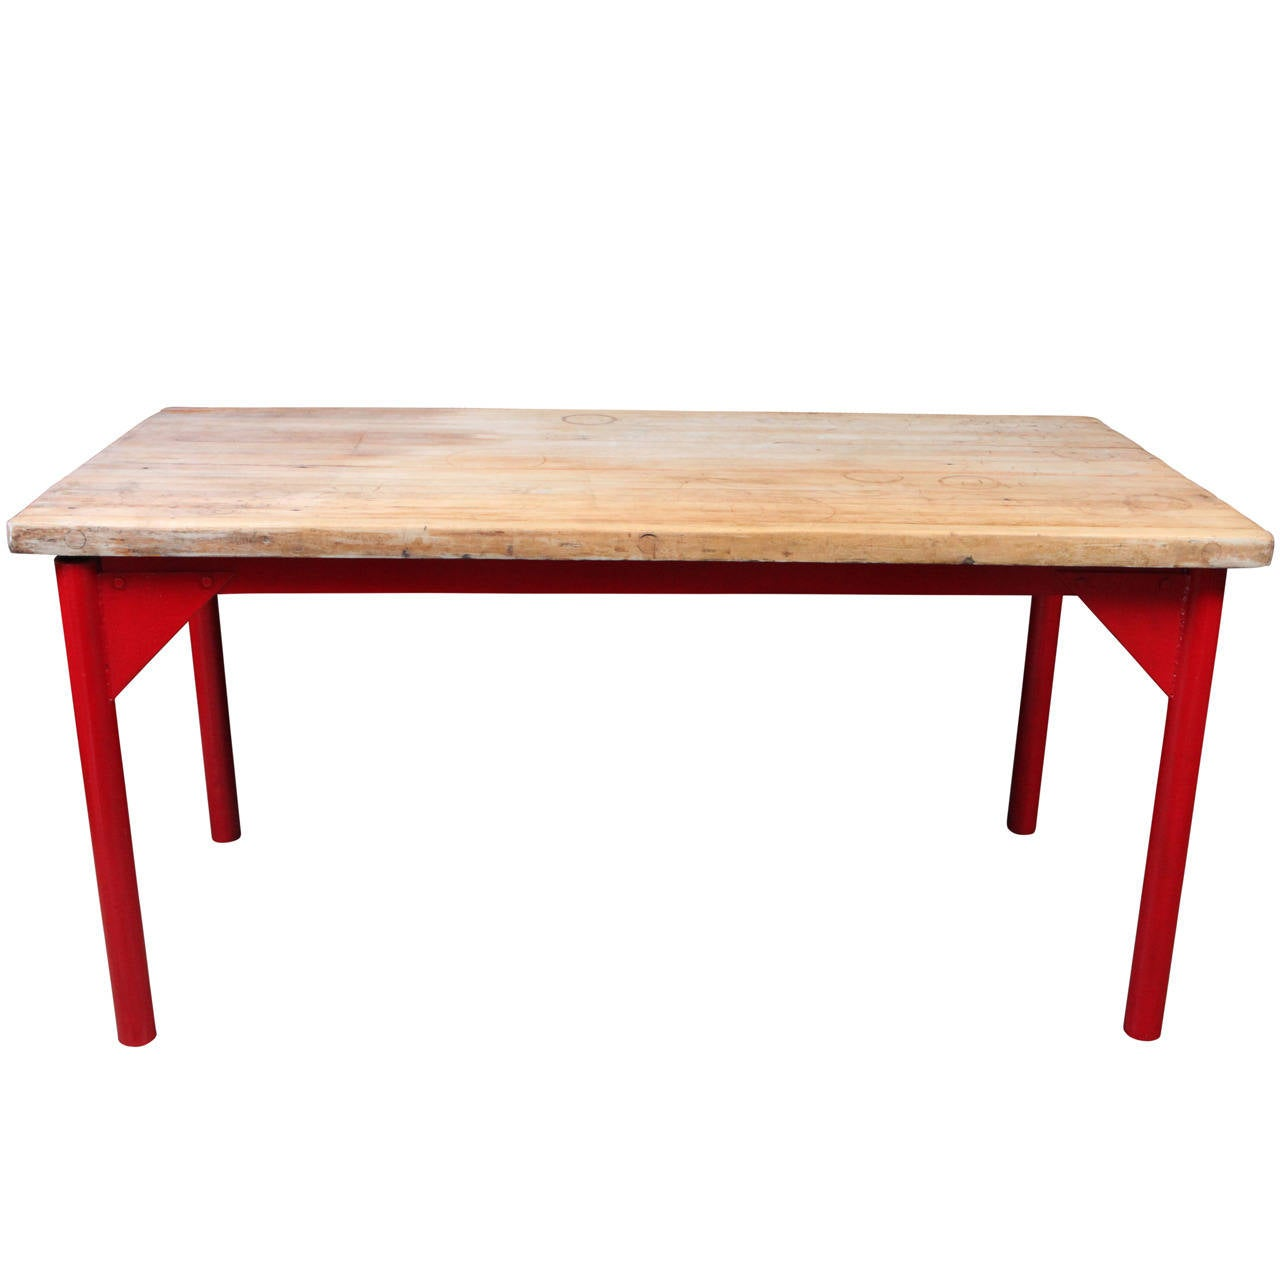 Butcher Block Restaurant Prep Table With Painted Metal Legs 1